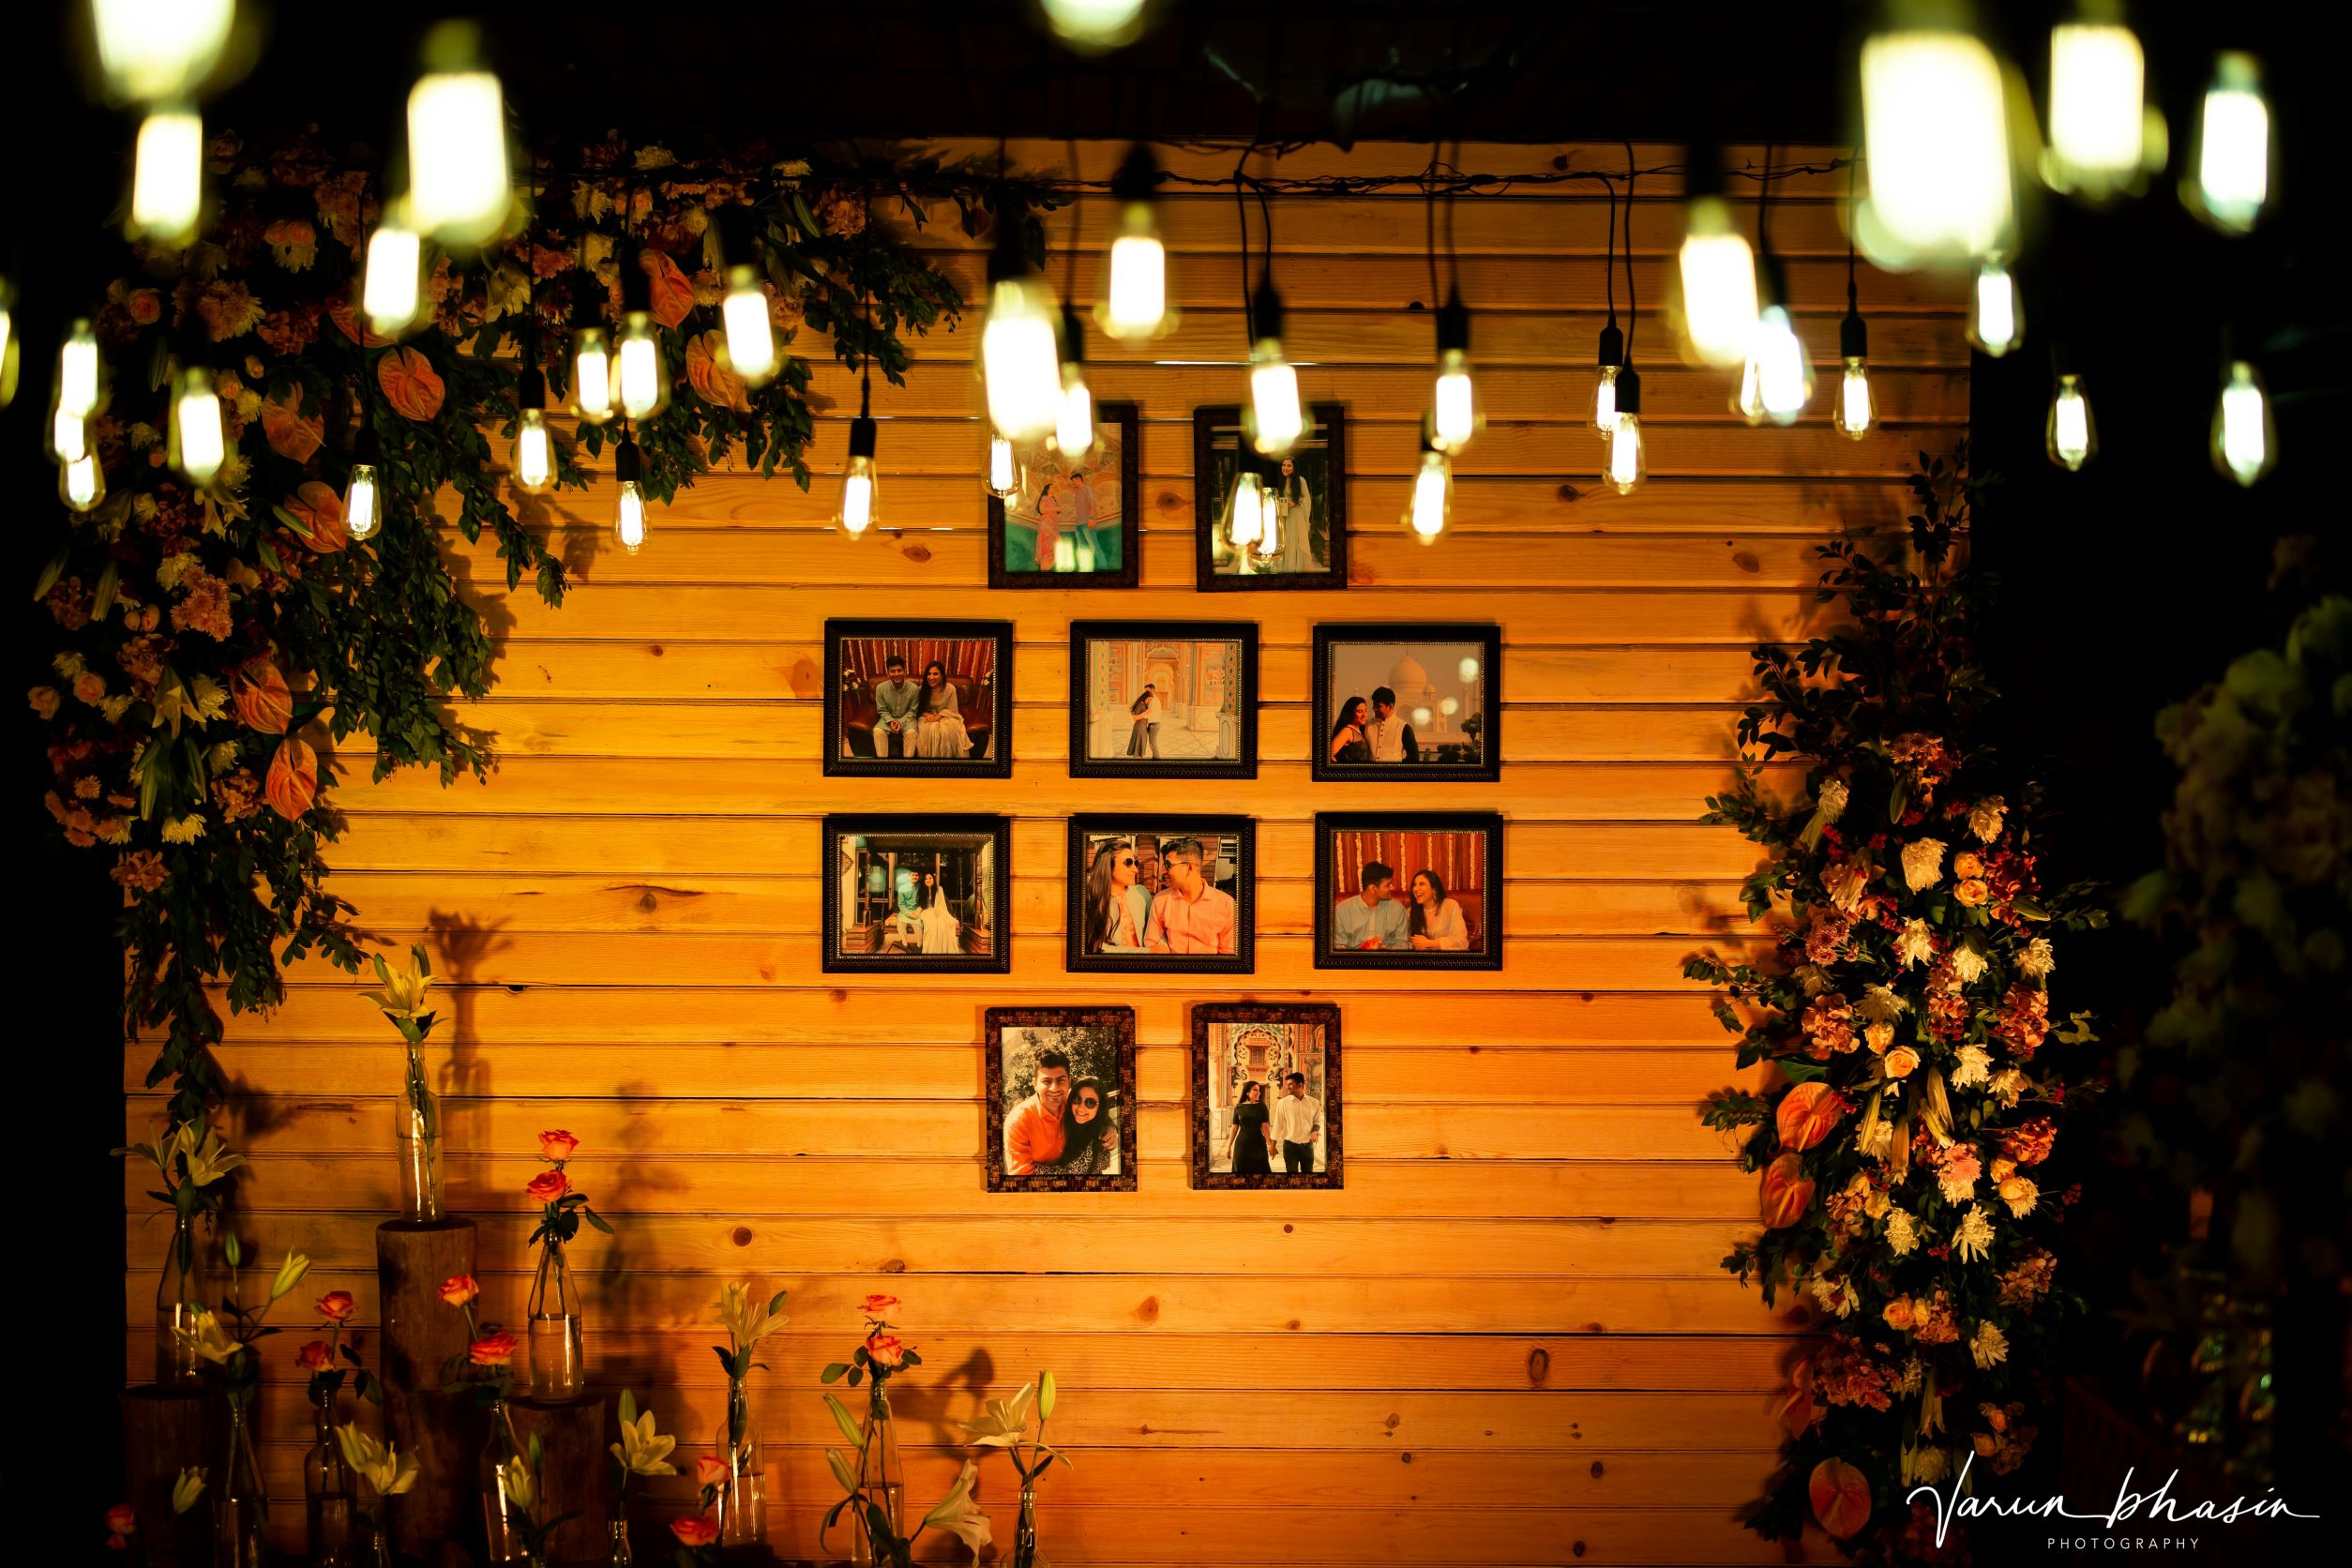 couple's pictures as decor